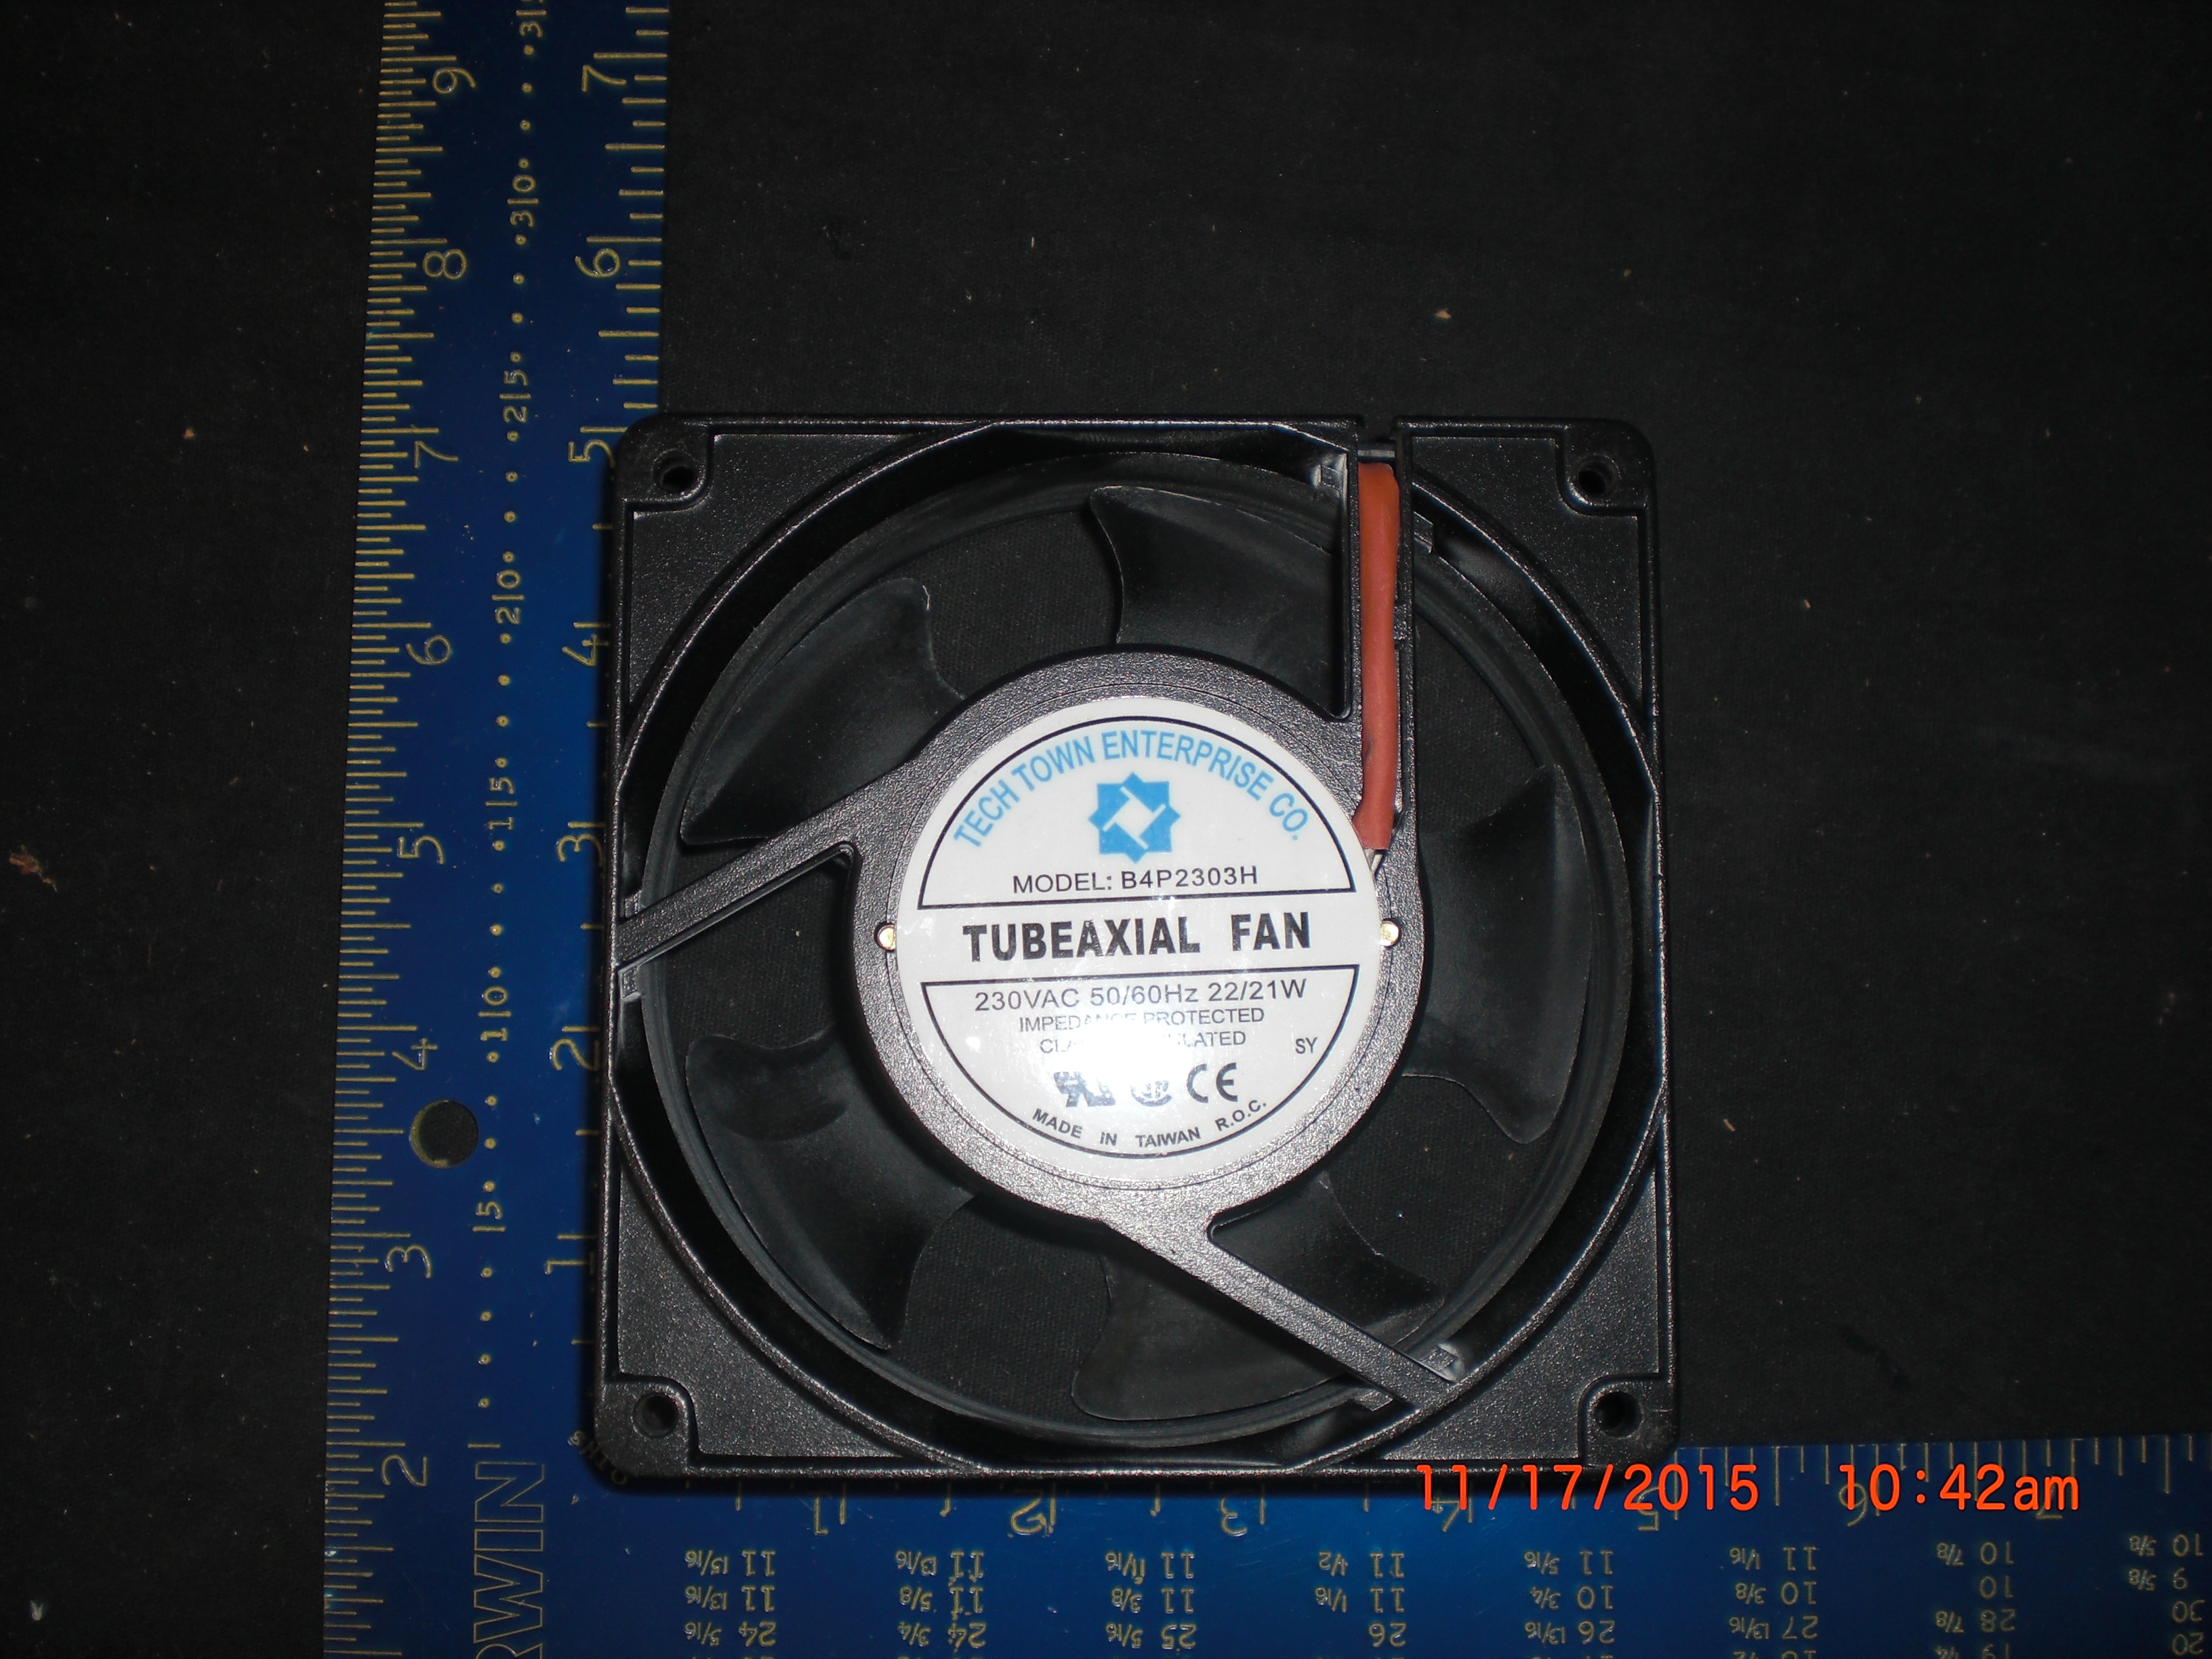 Fan Tubeaxial 230VAC, 50/60Hz, 22/21W Fan Tech Town B4P2303H